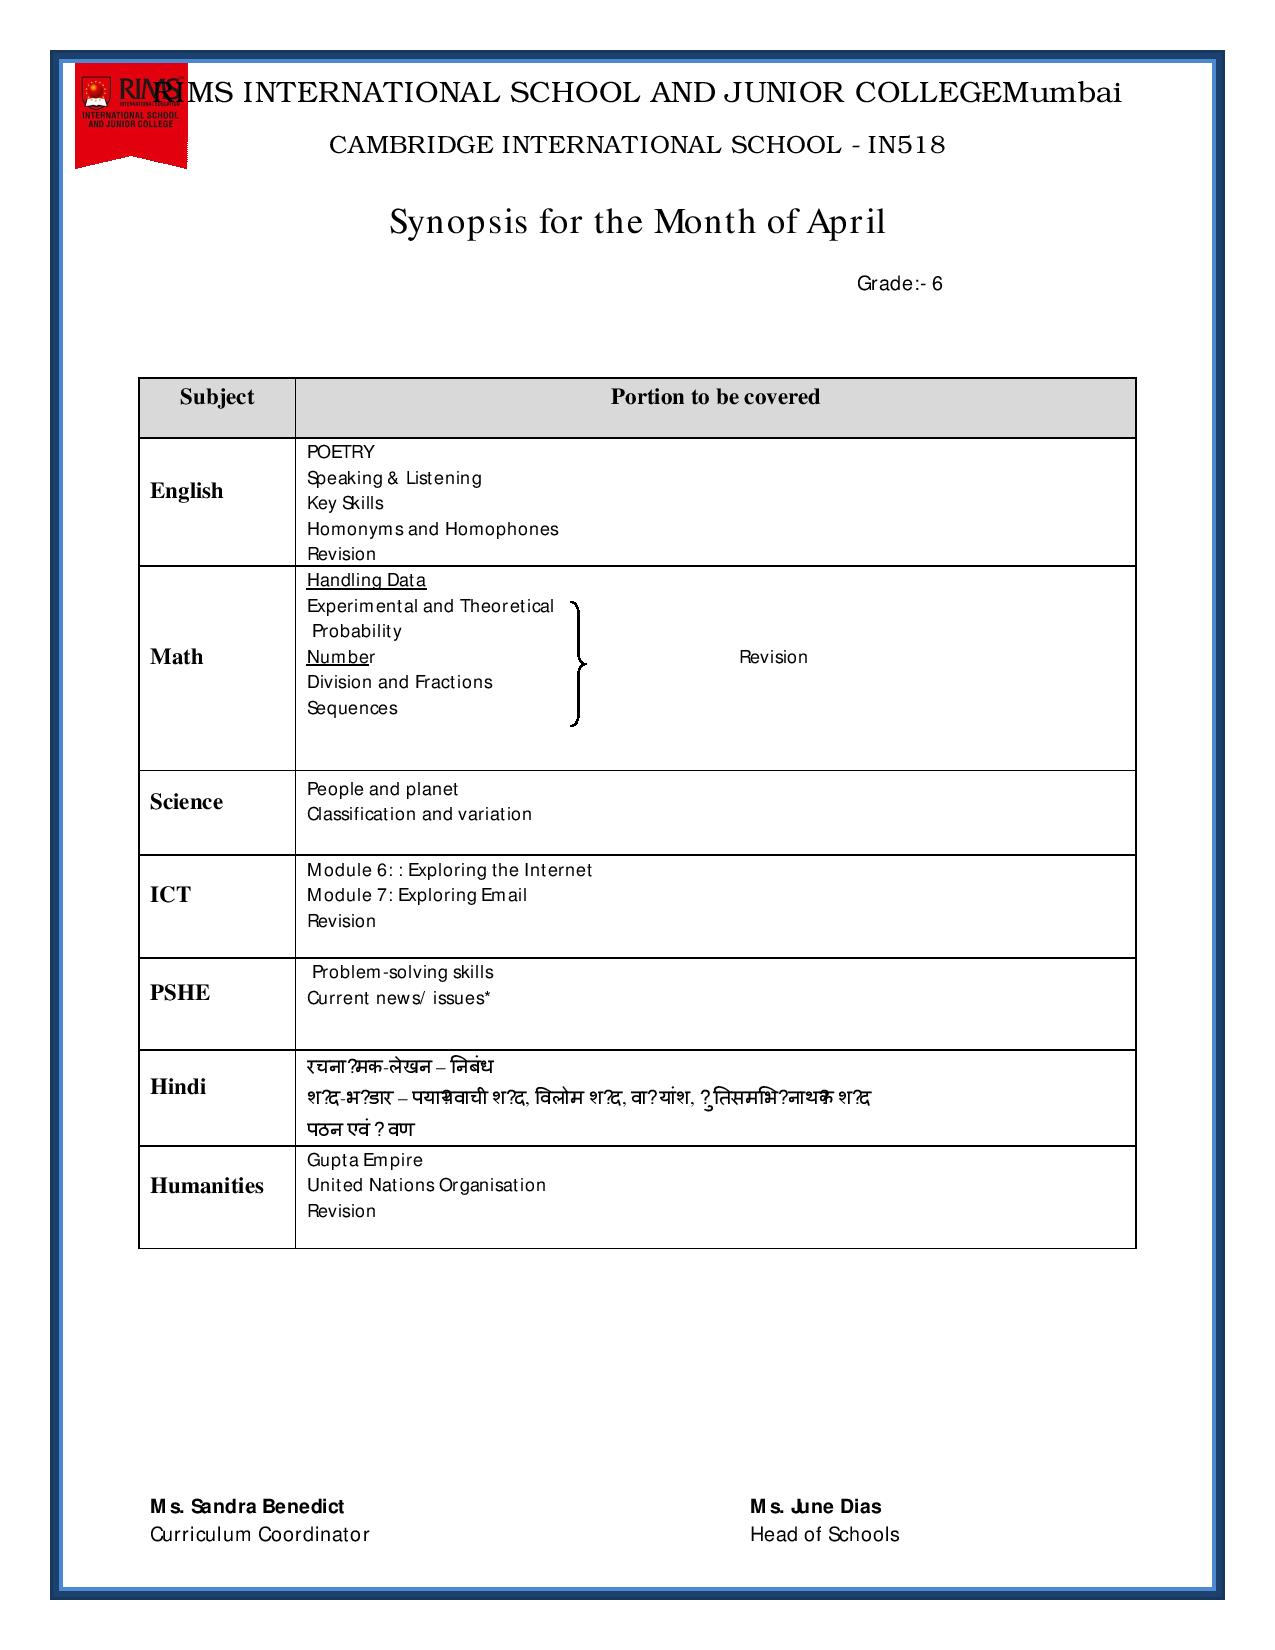 Synopsis for the Month of April – Grade 6